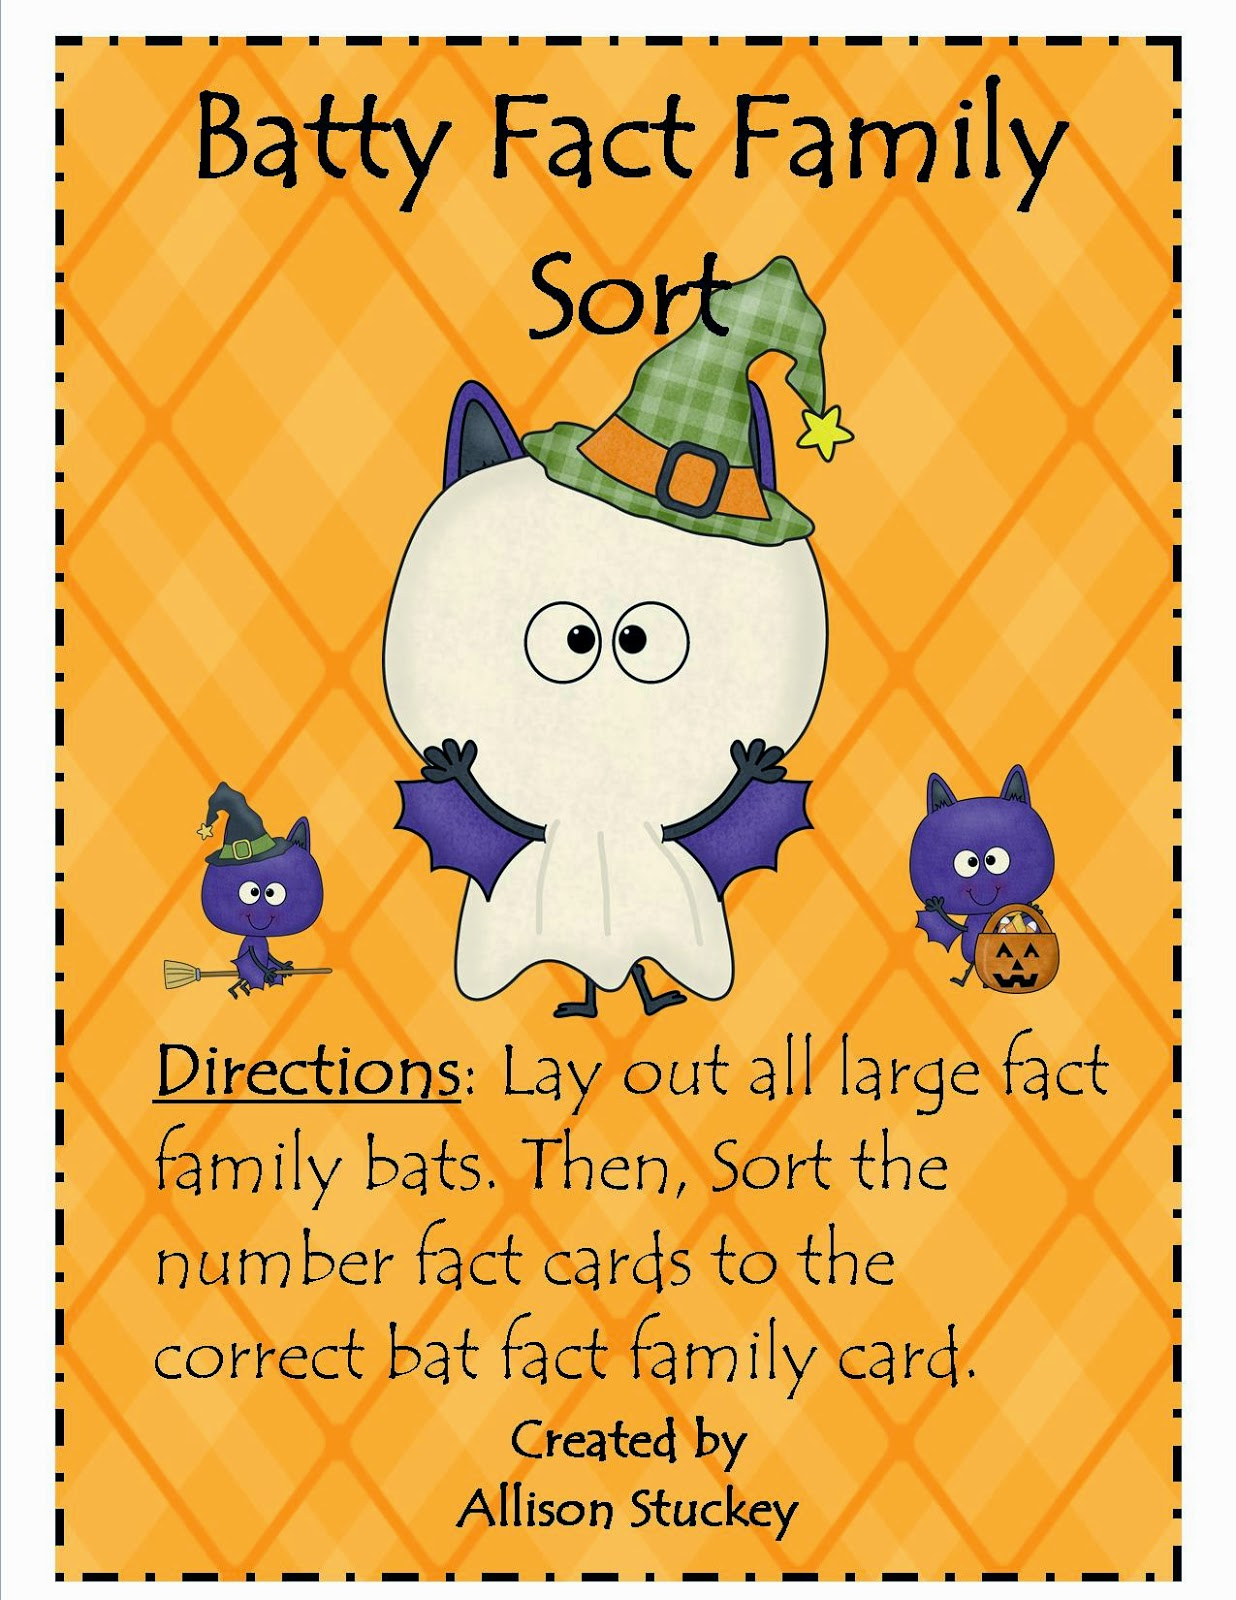 http://www.teacherspayteachers.com/Product/Batty-Fact-Family-Sort-356485